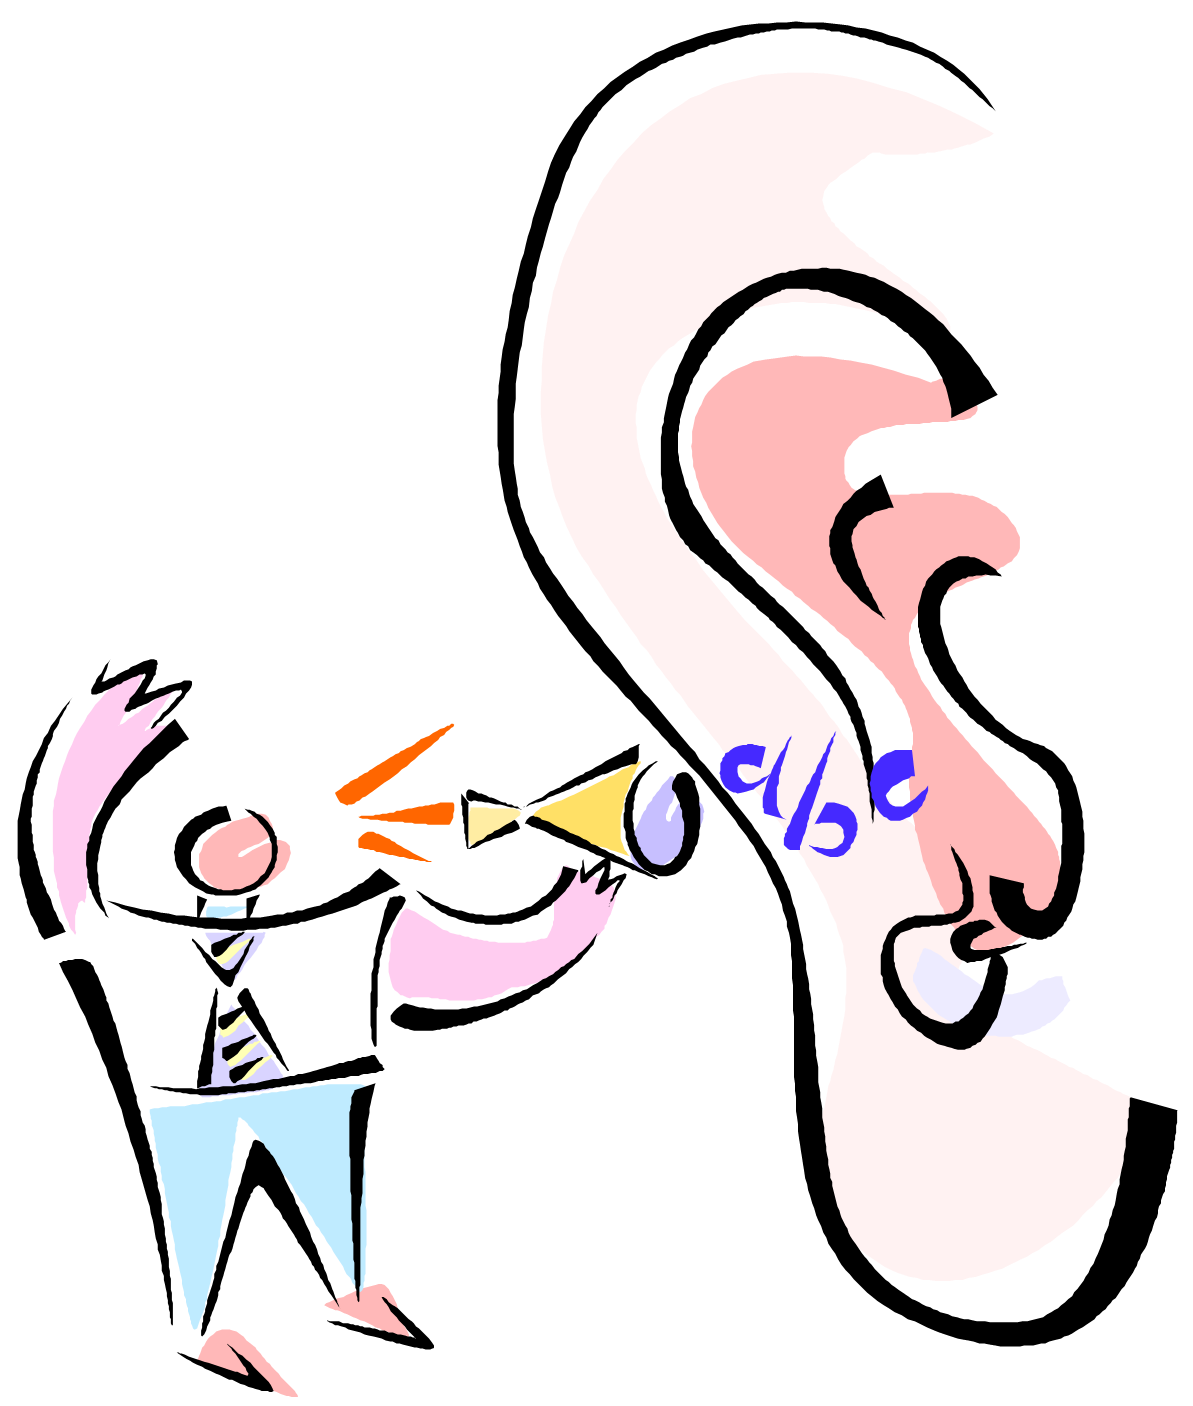 Listening Ear PNG File - Free PNG Listening Ear - Ear Listening PNG HD